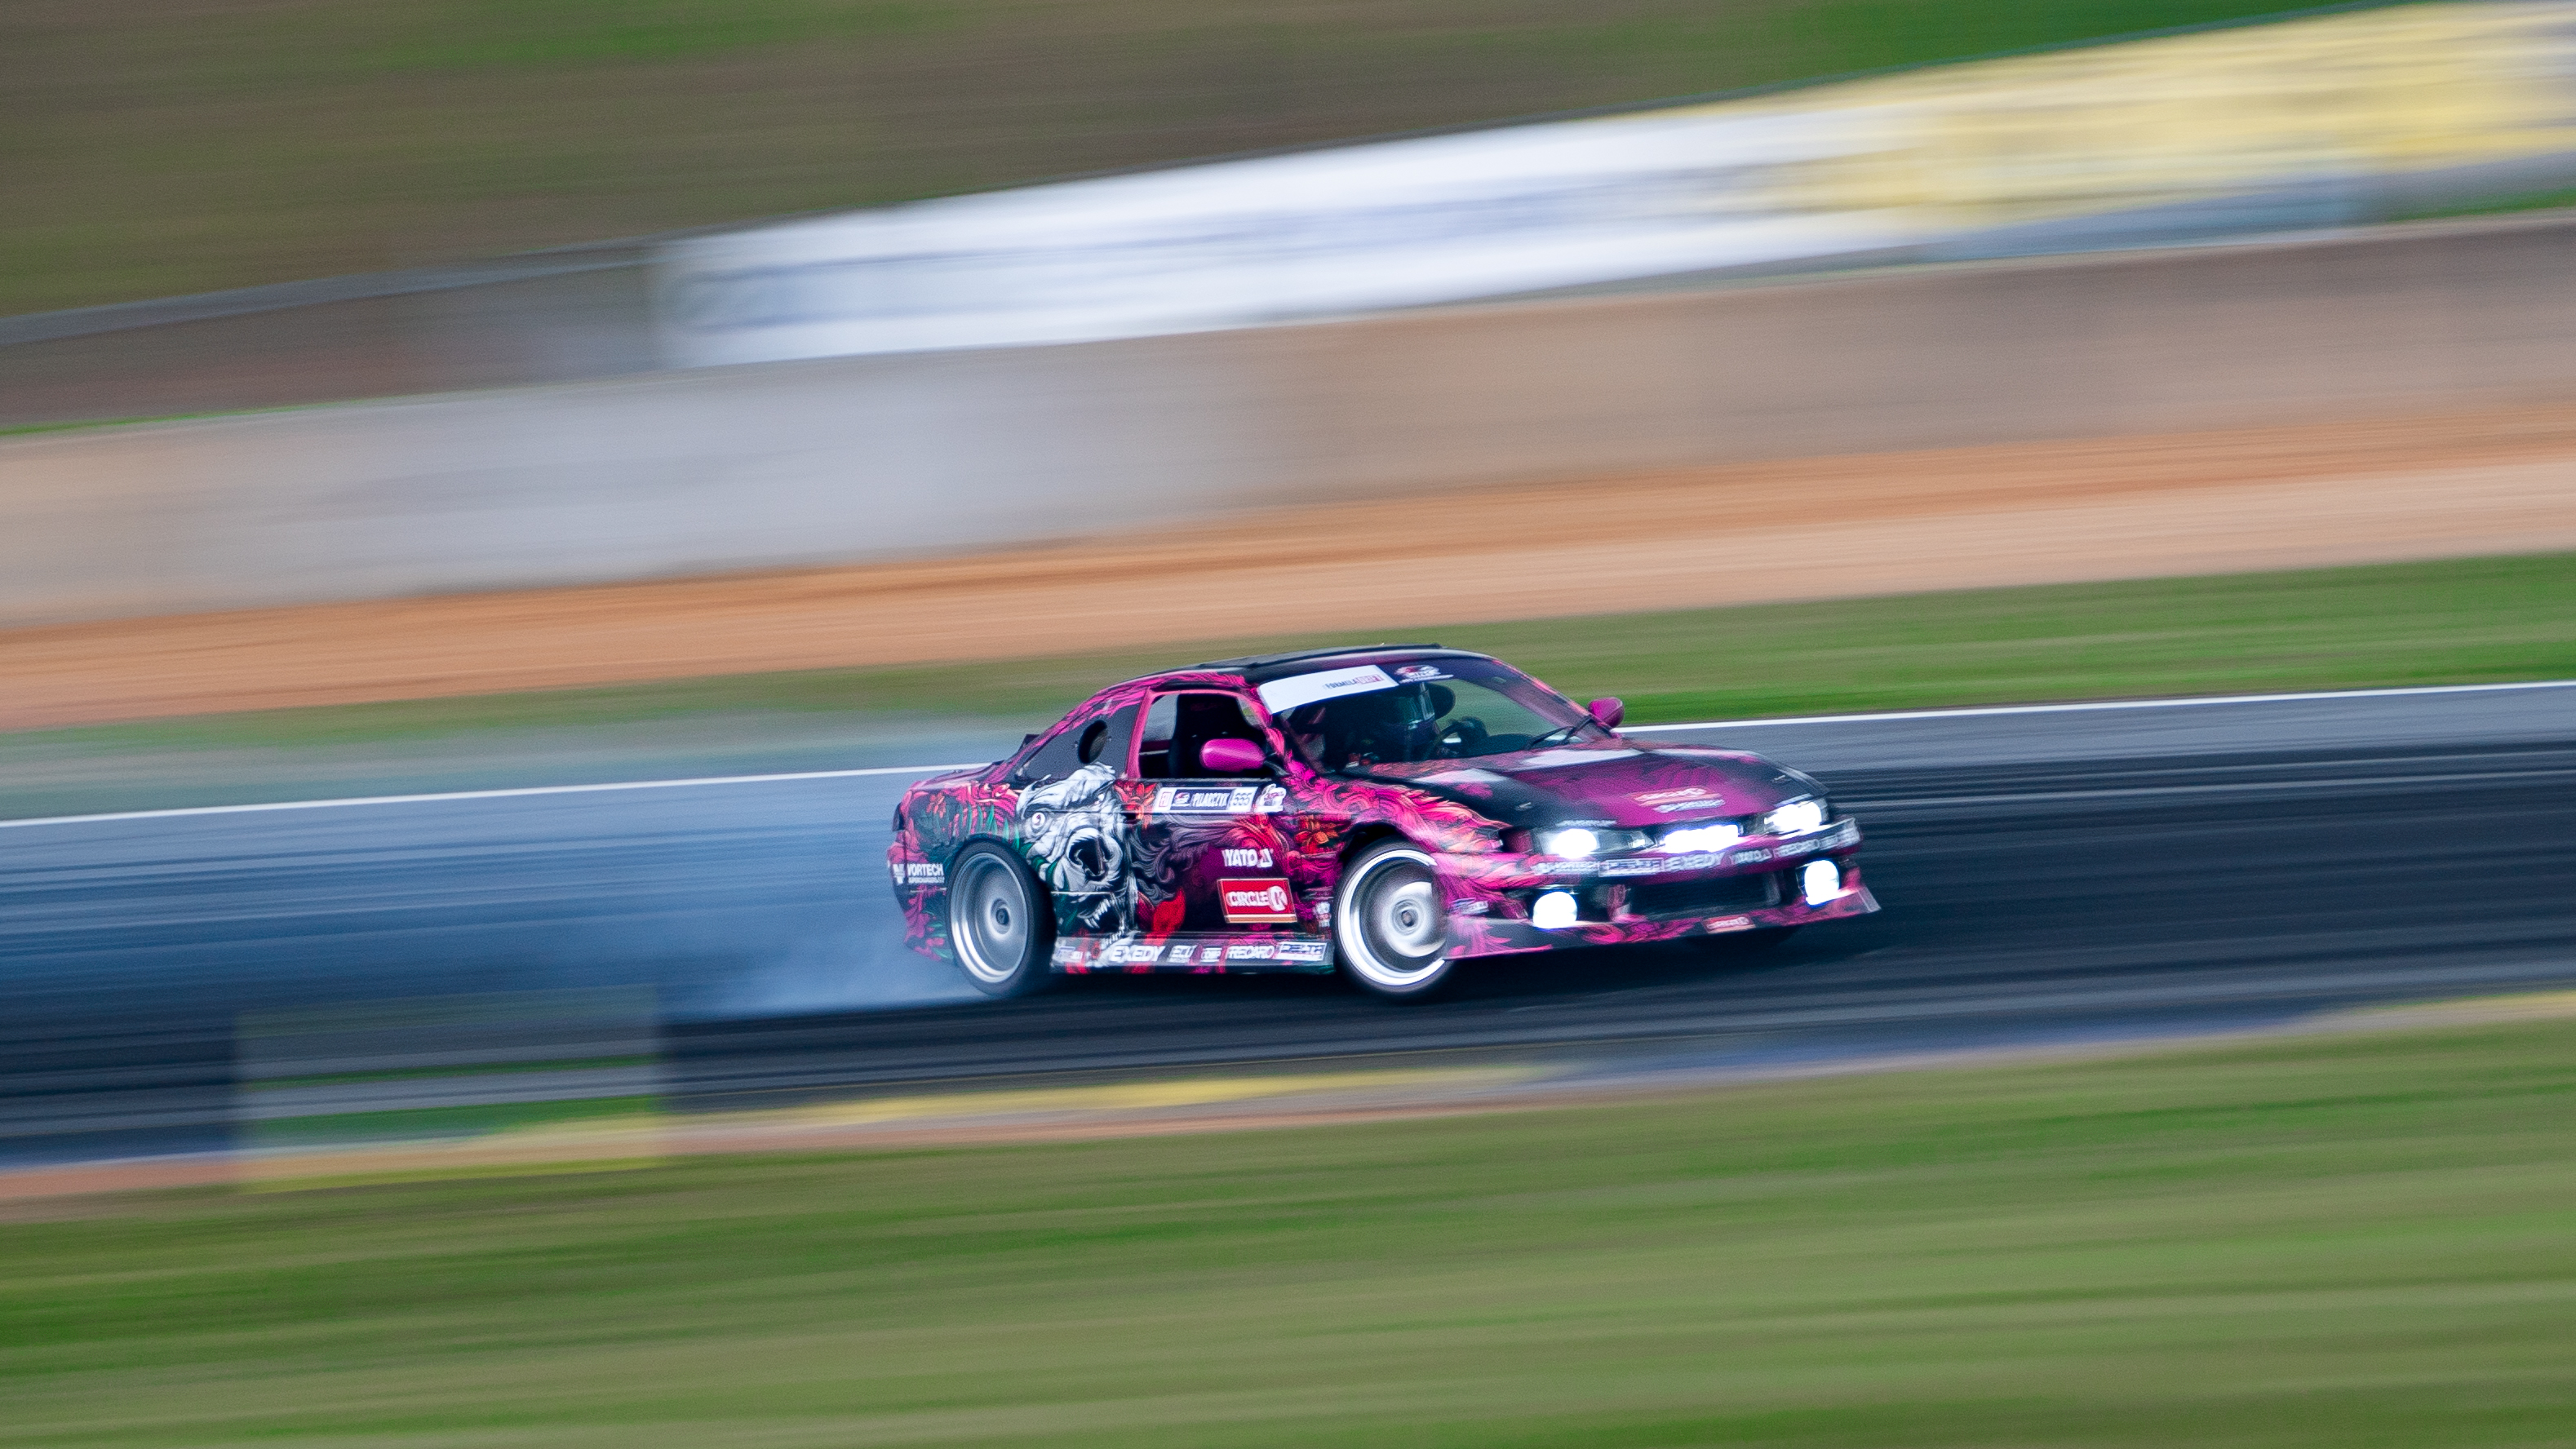 Karolina Pilarczyk competing at Formula Drift Pro2 in Atlanta | Rebecca Nguyen photo